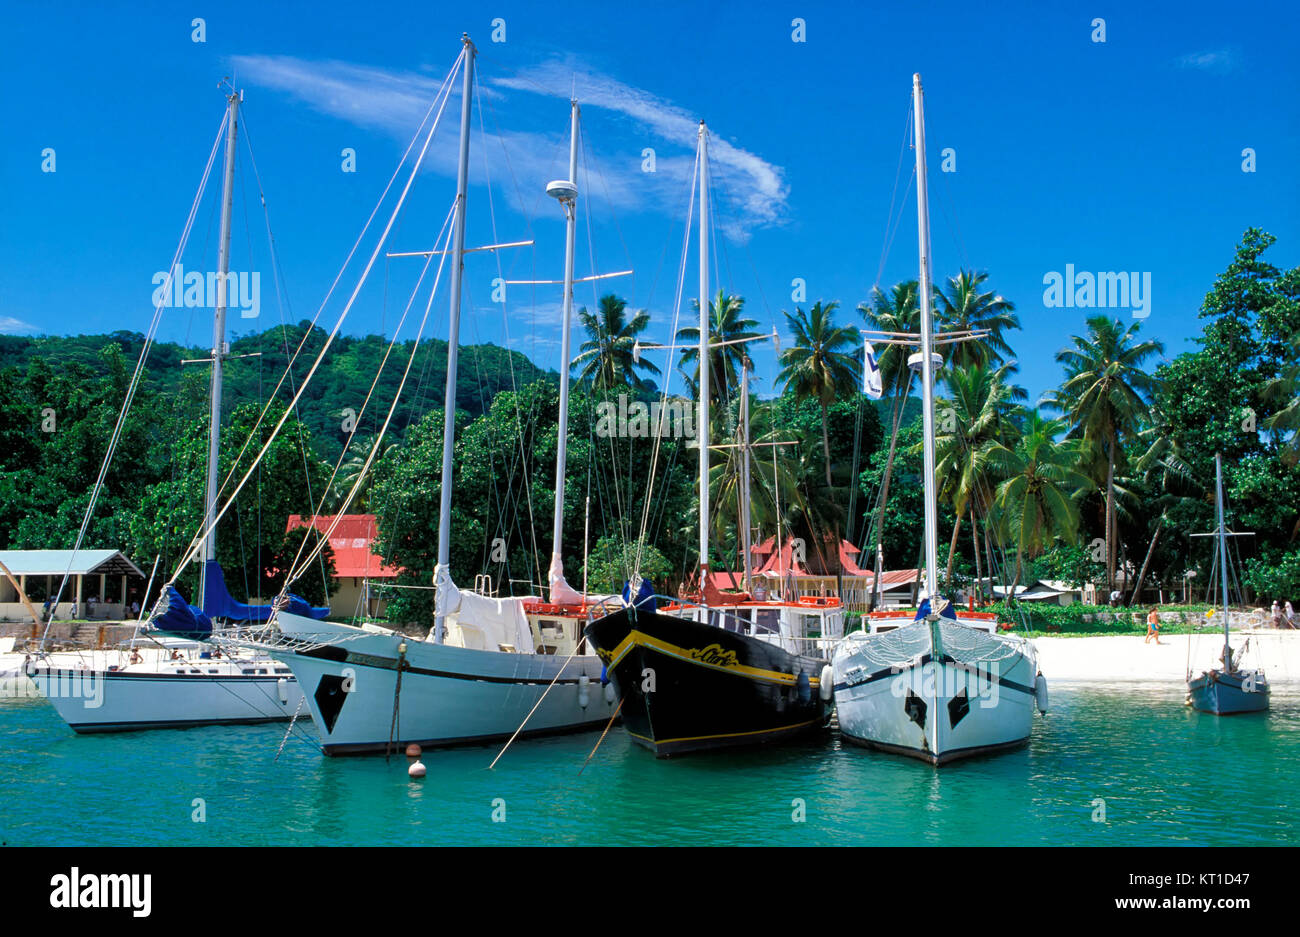 Sailing ships in the harbor, La Digue island, Seychelles - Stock Image